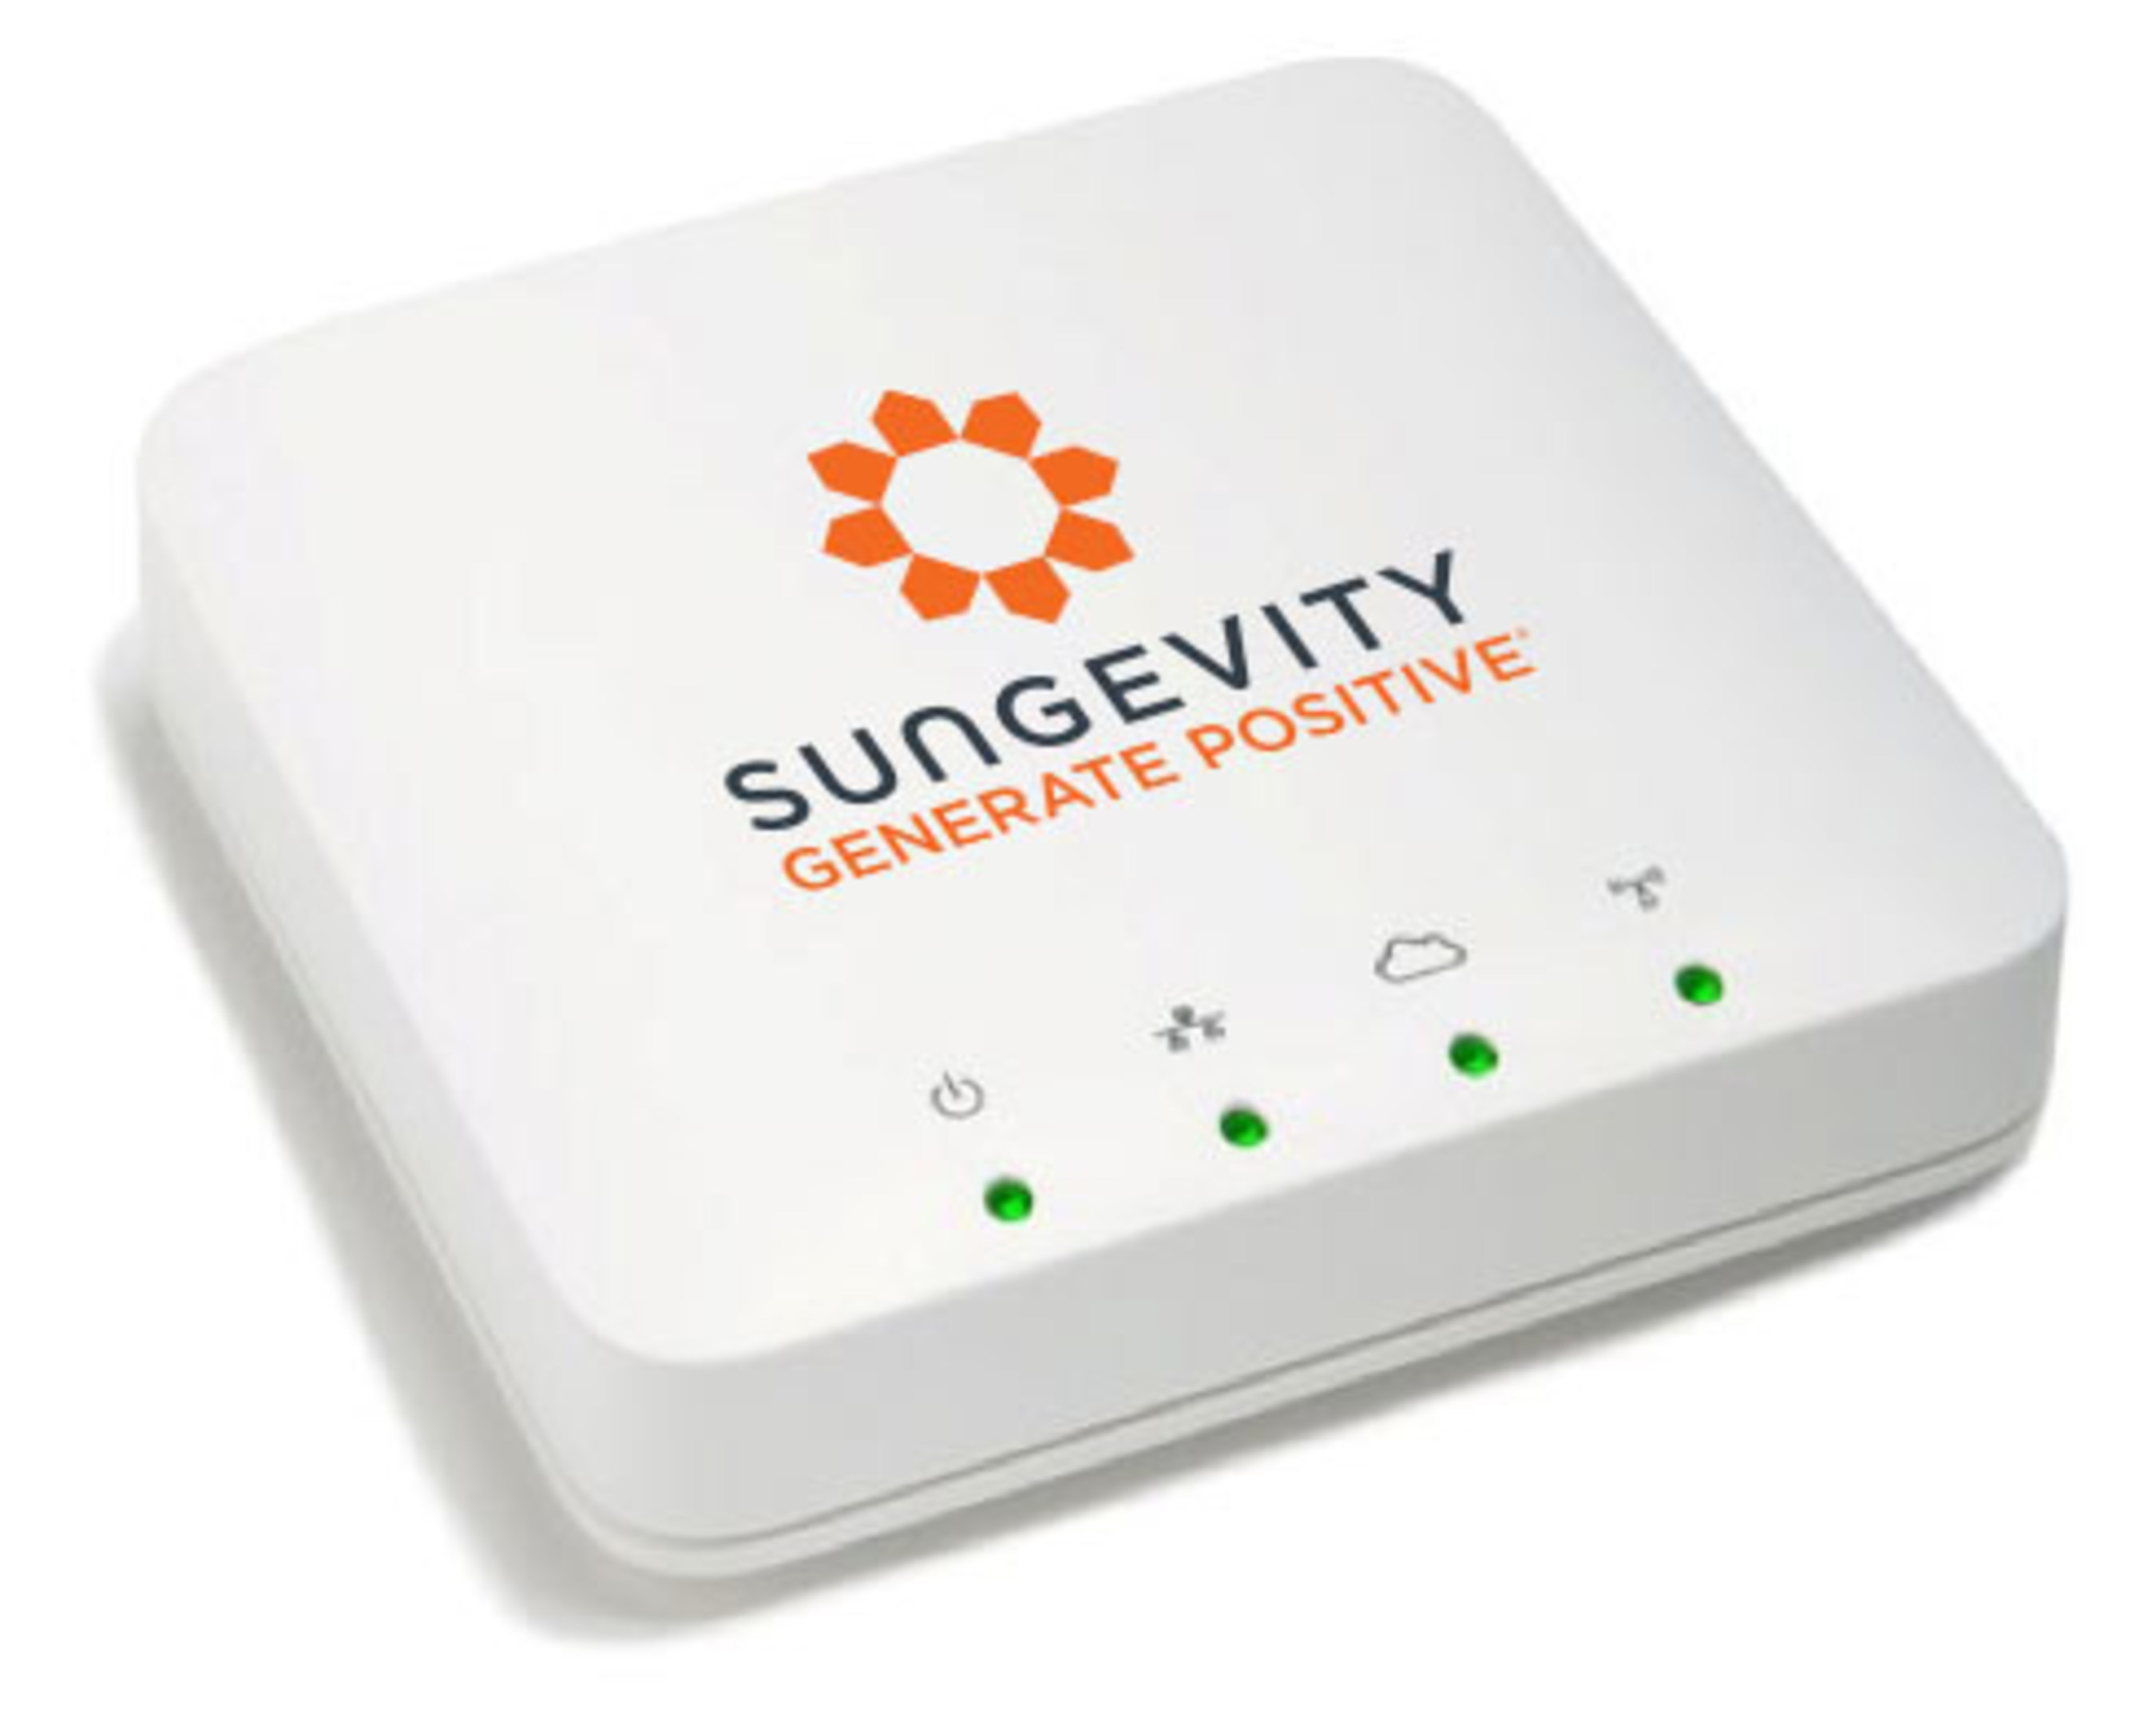 Homeowners Can Now Use Solar Production and Energy Consumption Data to Maximize the Savings from their Sungevity Energy System